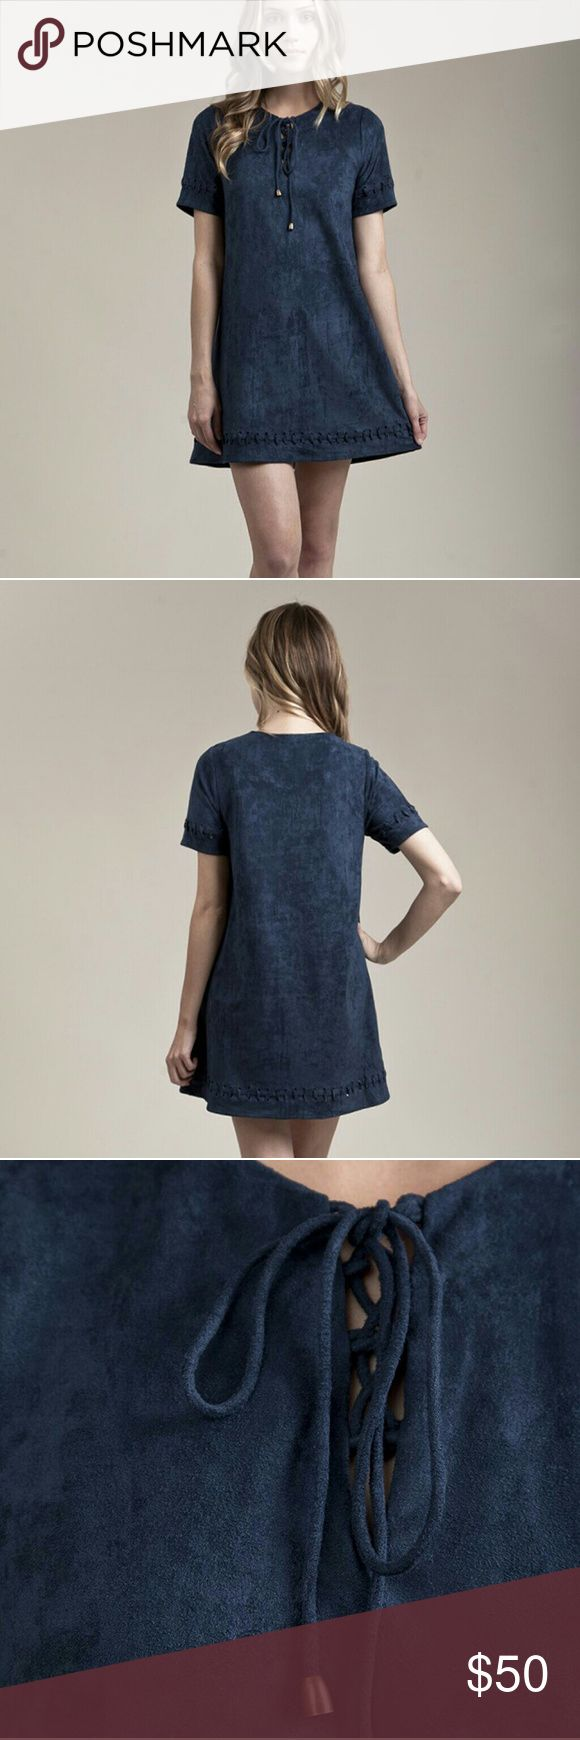 $90 Anthropologie Moon River Suede Lace Up Dress Brand is Moon River, sold in stores like Anthropologie and ASOS for $90 original retail. Worn only once. Anthropologie Dresses Mini